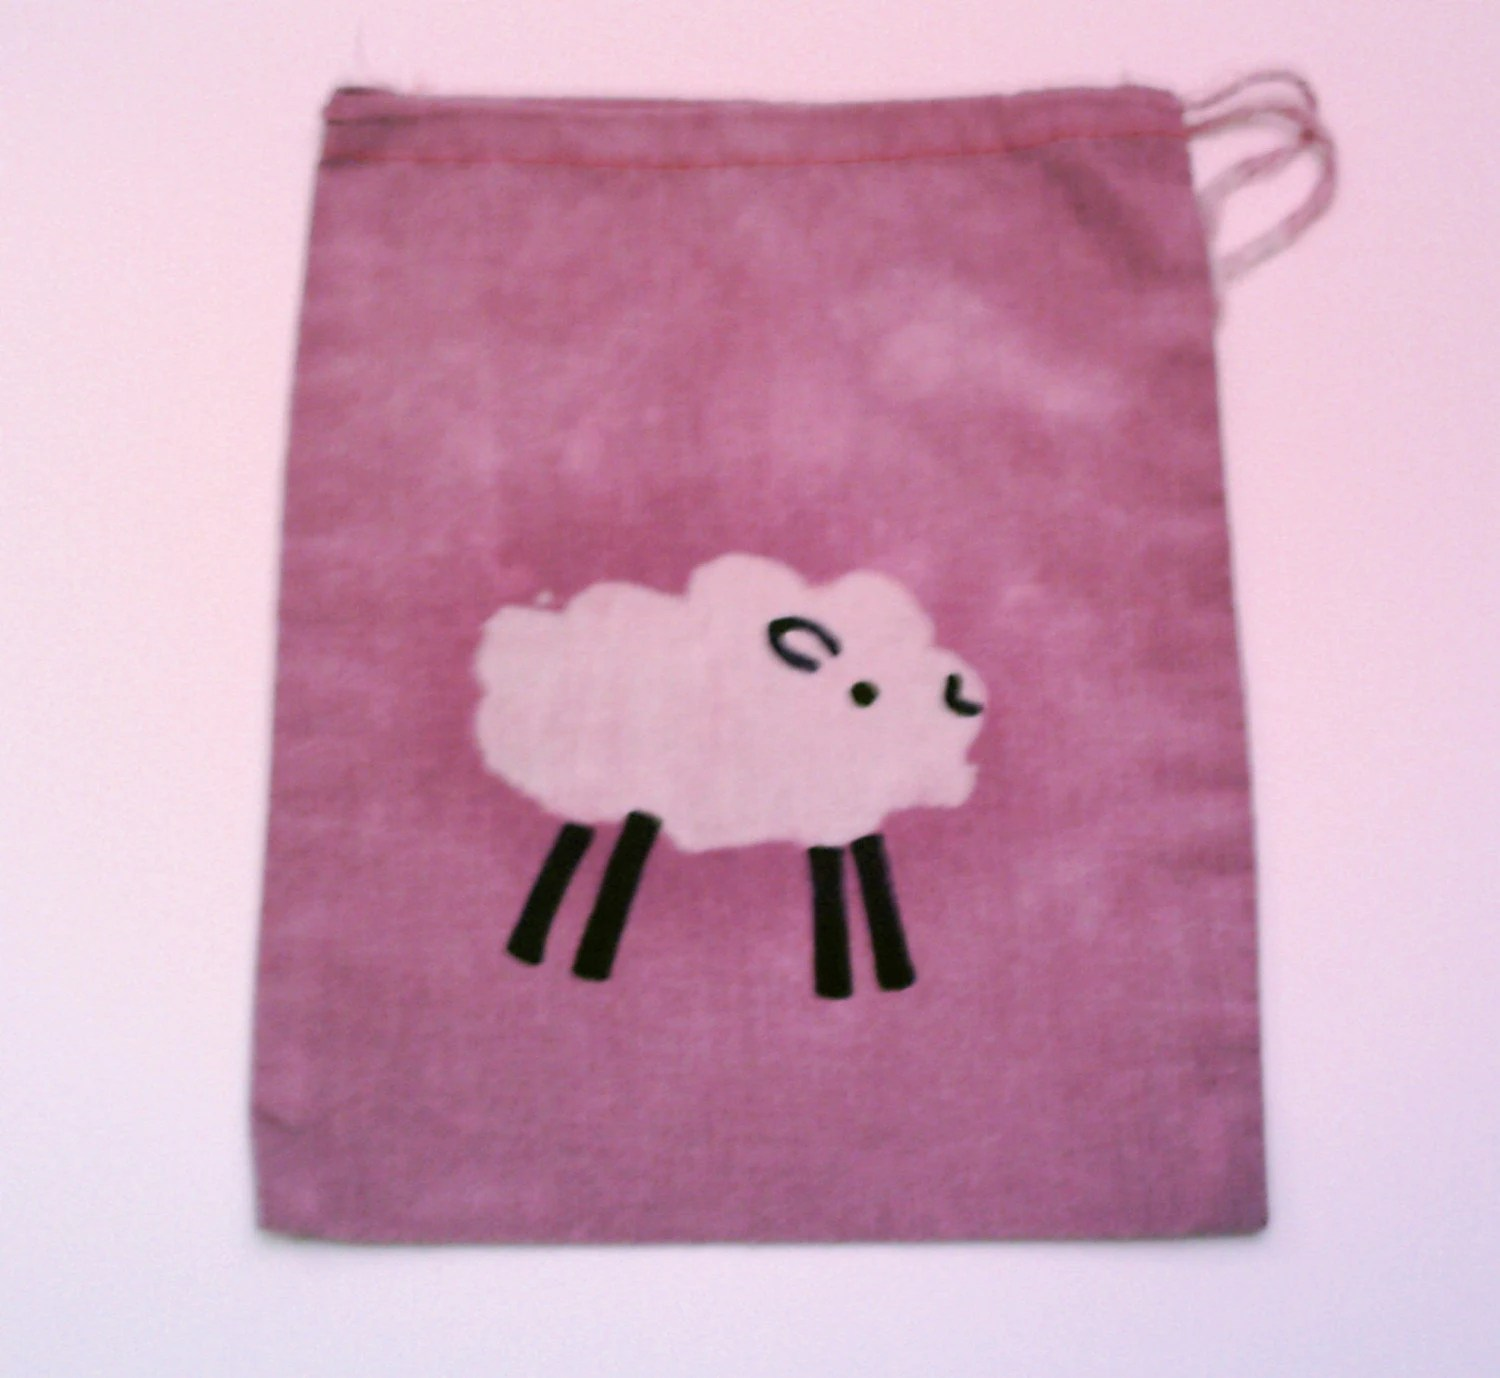 FREE SHIPPING batik SHEEP mini project or notion drawstring bag NO TEXT